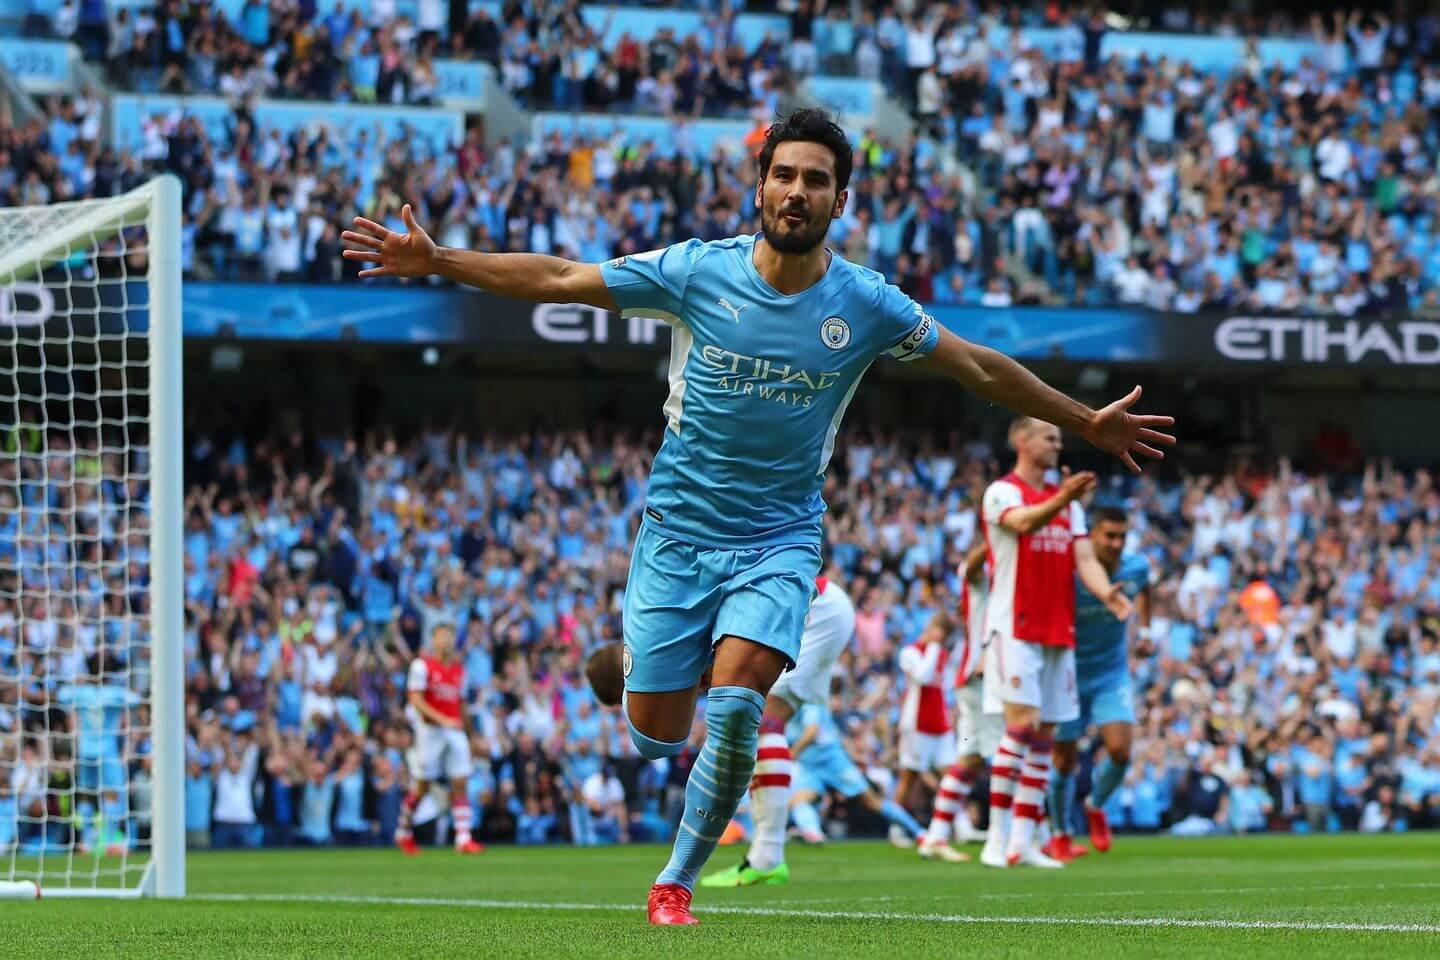 Man City vs Arsenal live score and result updates: Premier League game latest as Mikel Arteta's side are thrashed